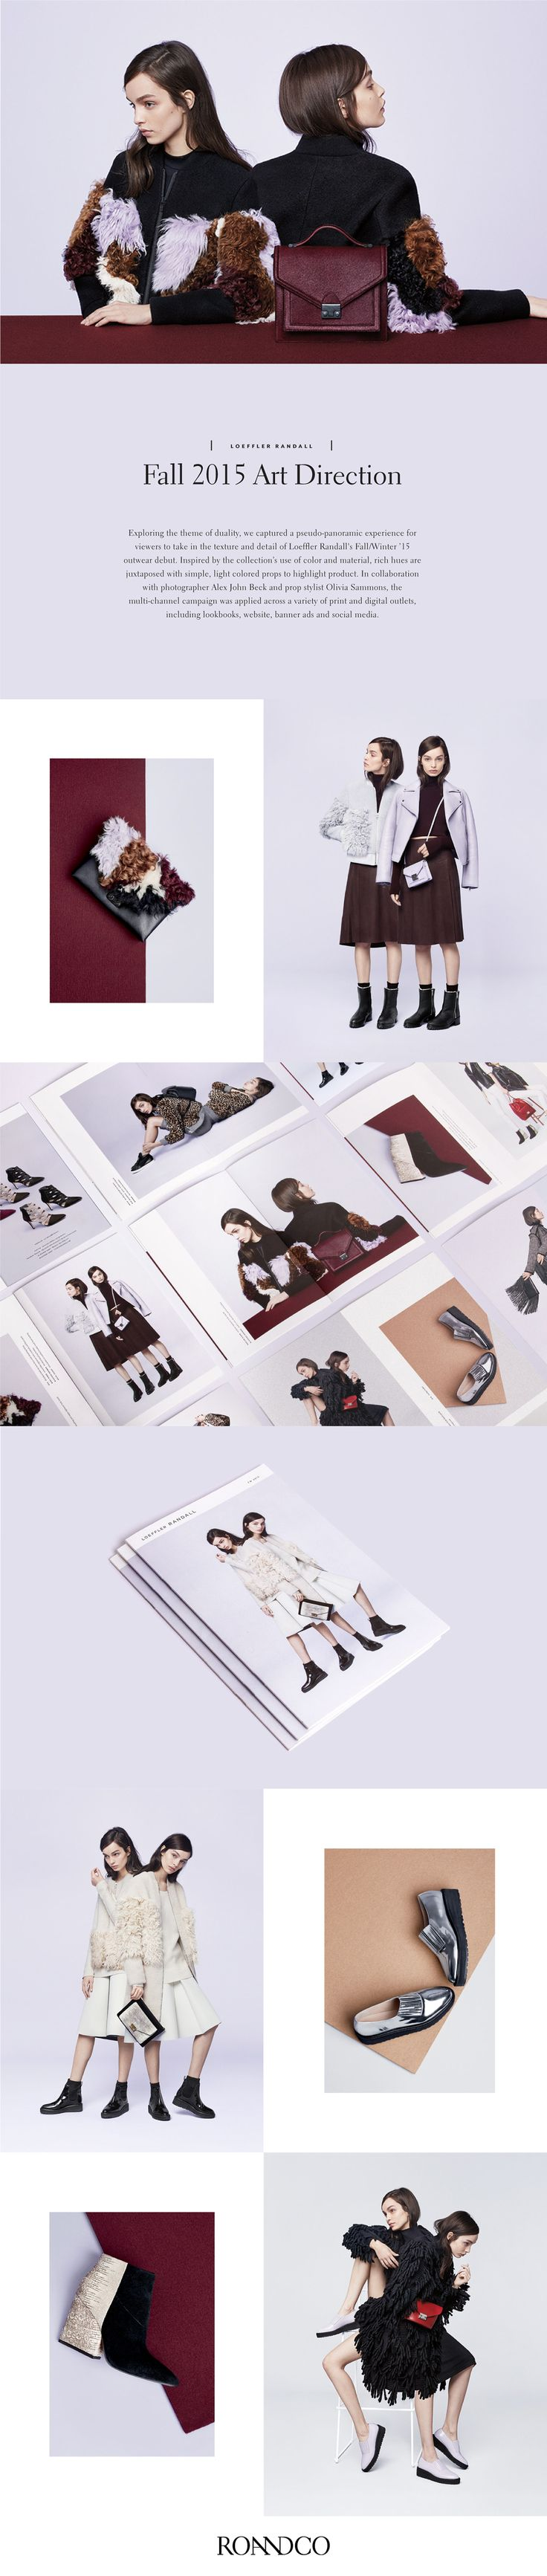 Loeffler Randall FW '15 Art Direction on Behance